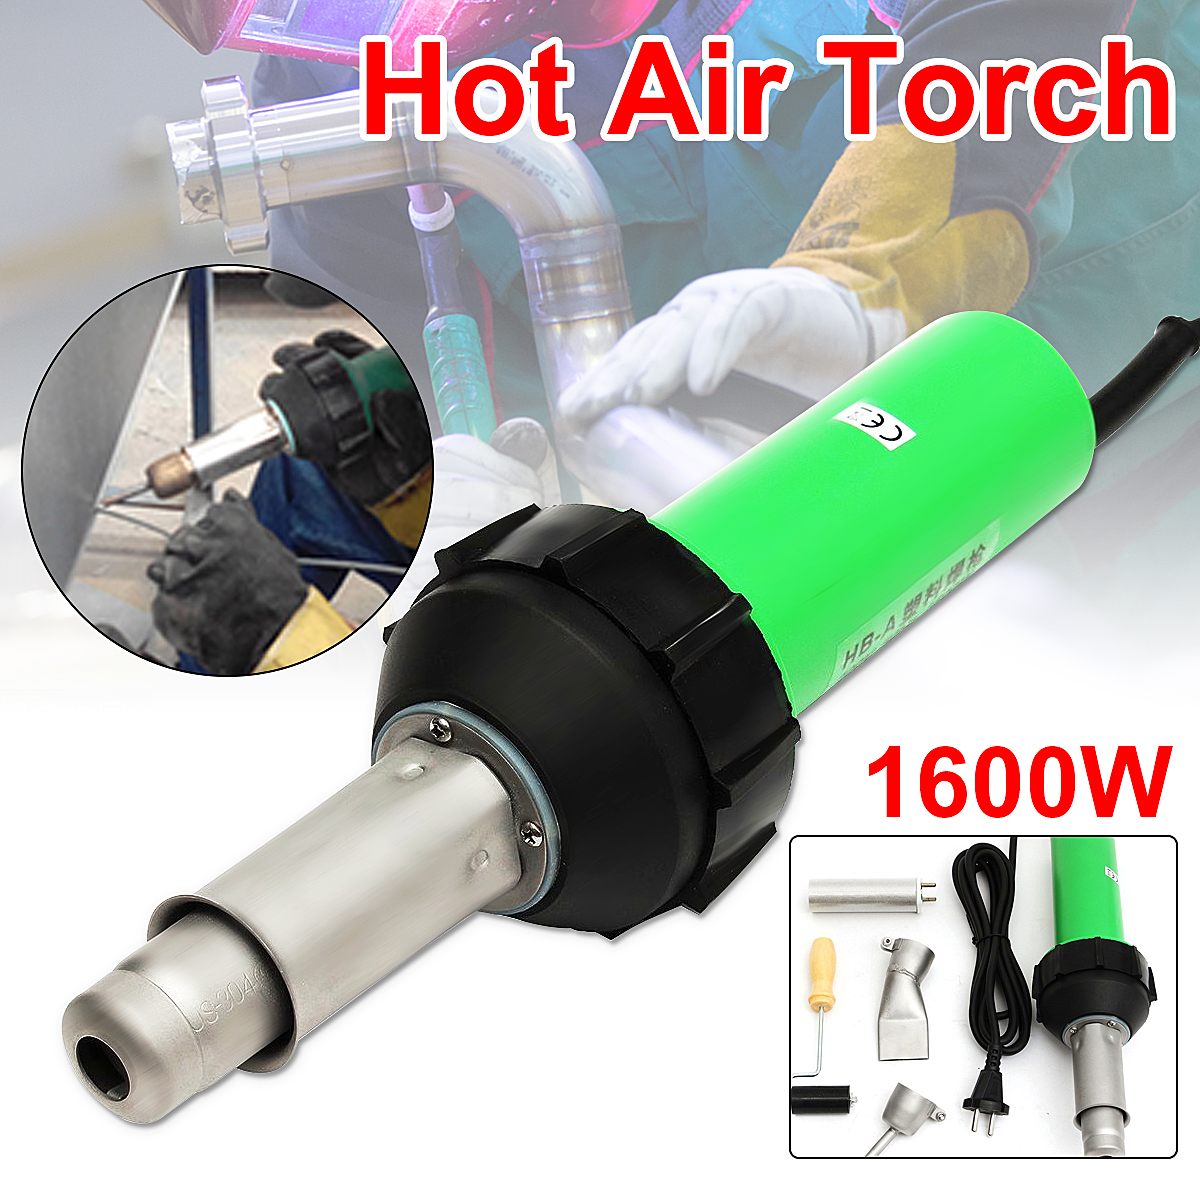 1600W 50Hz Electronic Heat Hot Air Torch Plastic Welding Welder Torch + Nozzle + Pressure Roller 3000Pa